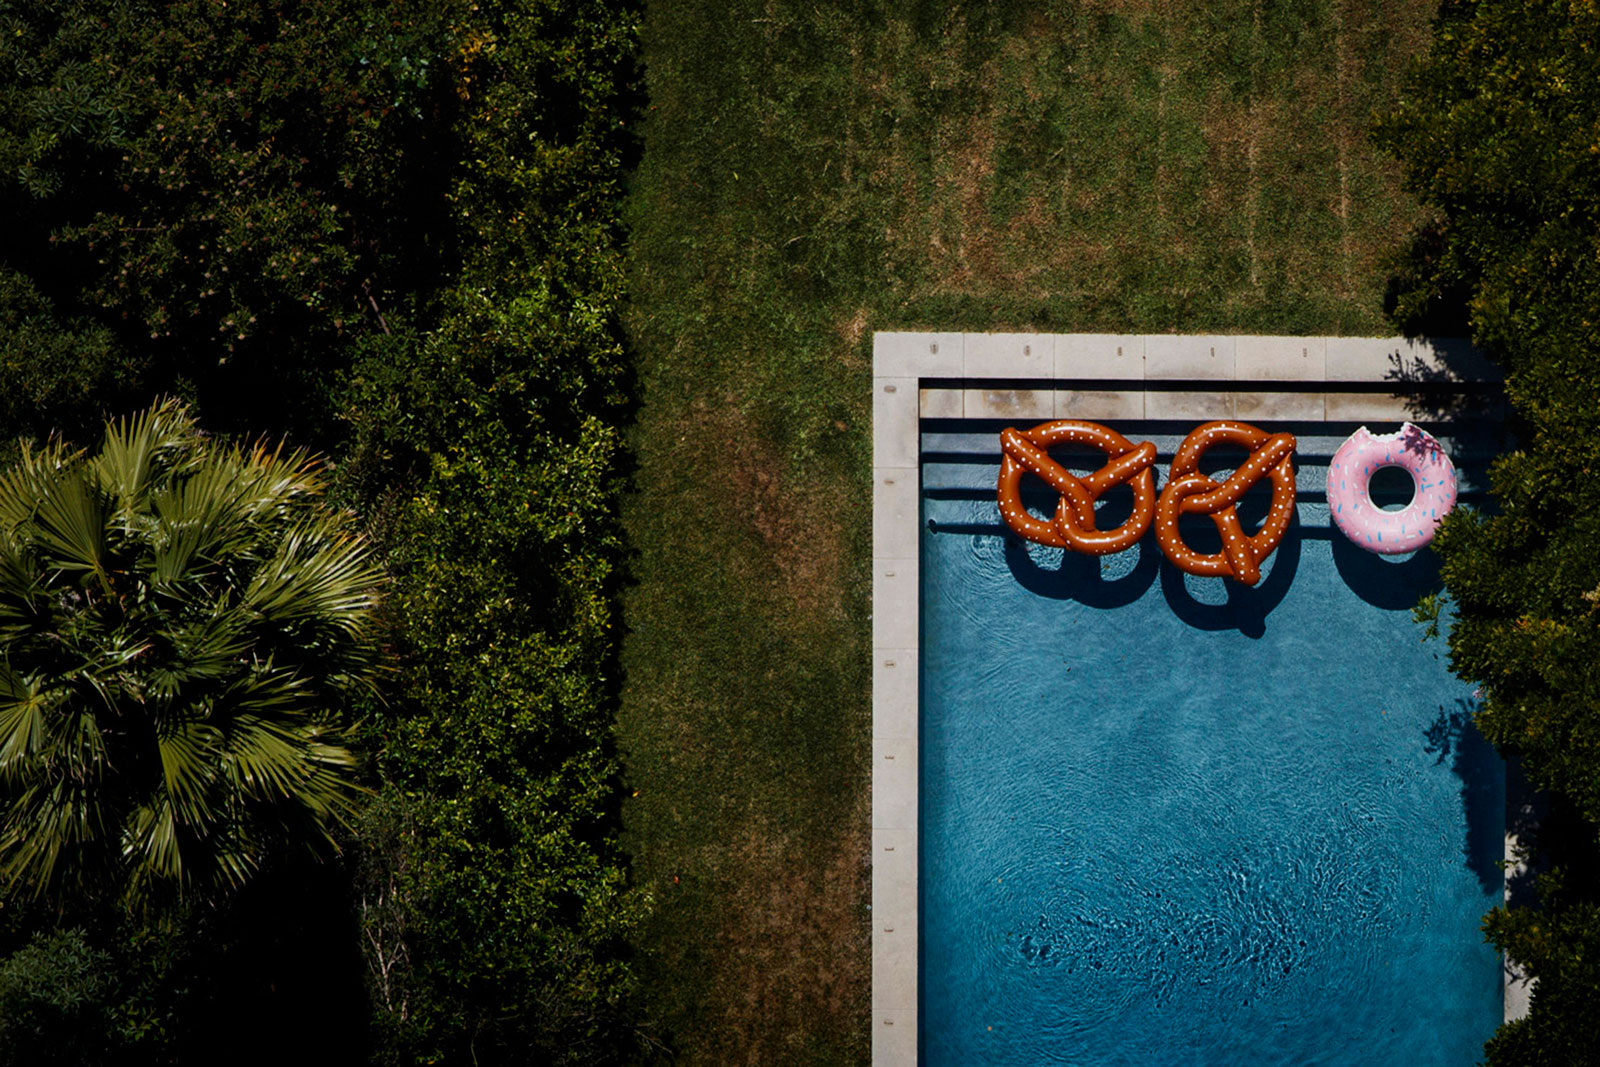 Inflatable pretzels and a doughnut float in a backyard pool at a home off Summit Drive in Los Angeles